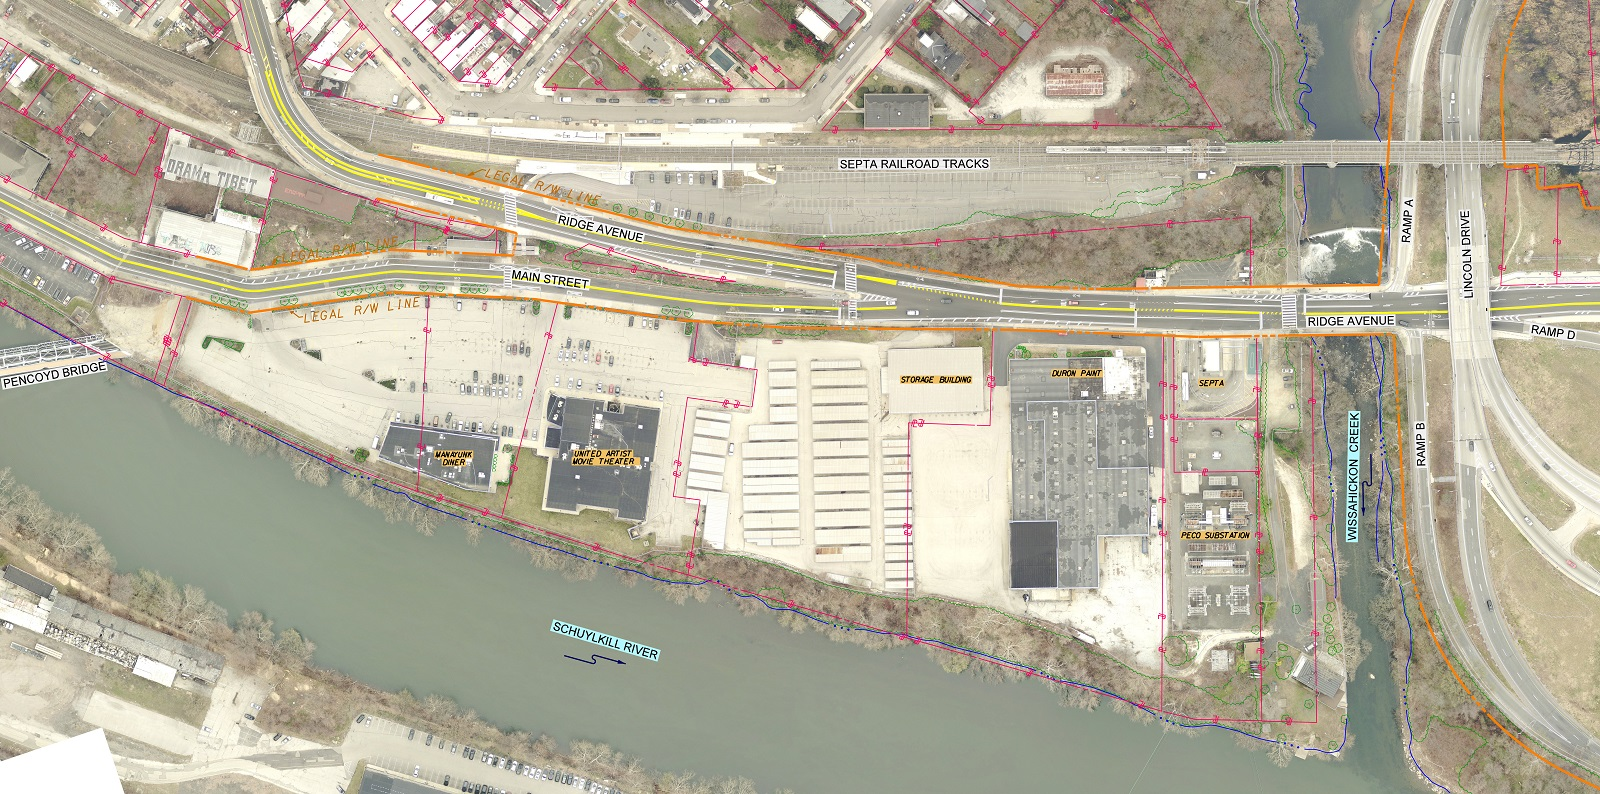 Satellite image showing the existing Wissahickon Transportation Center site